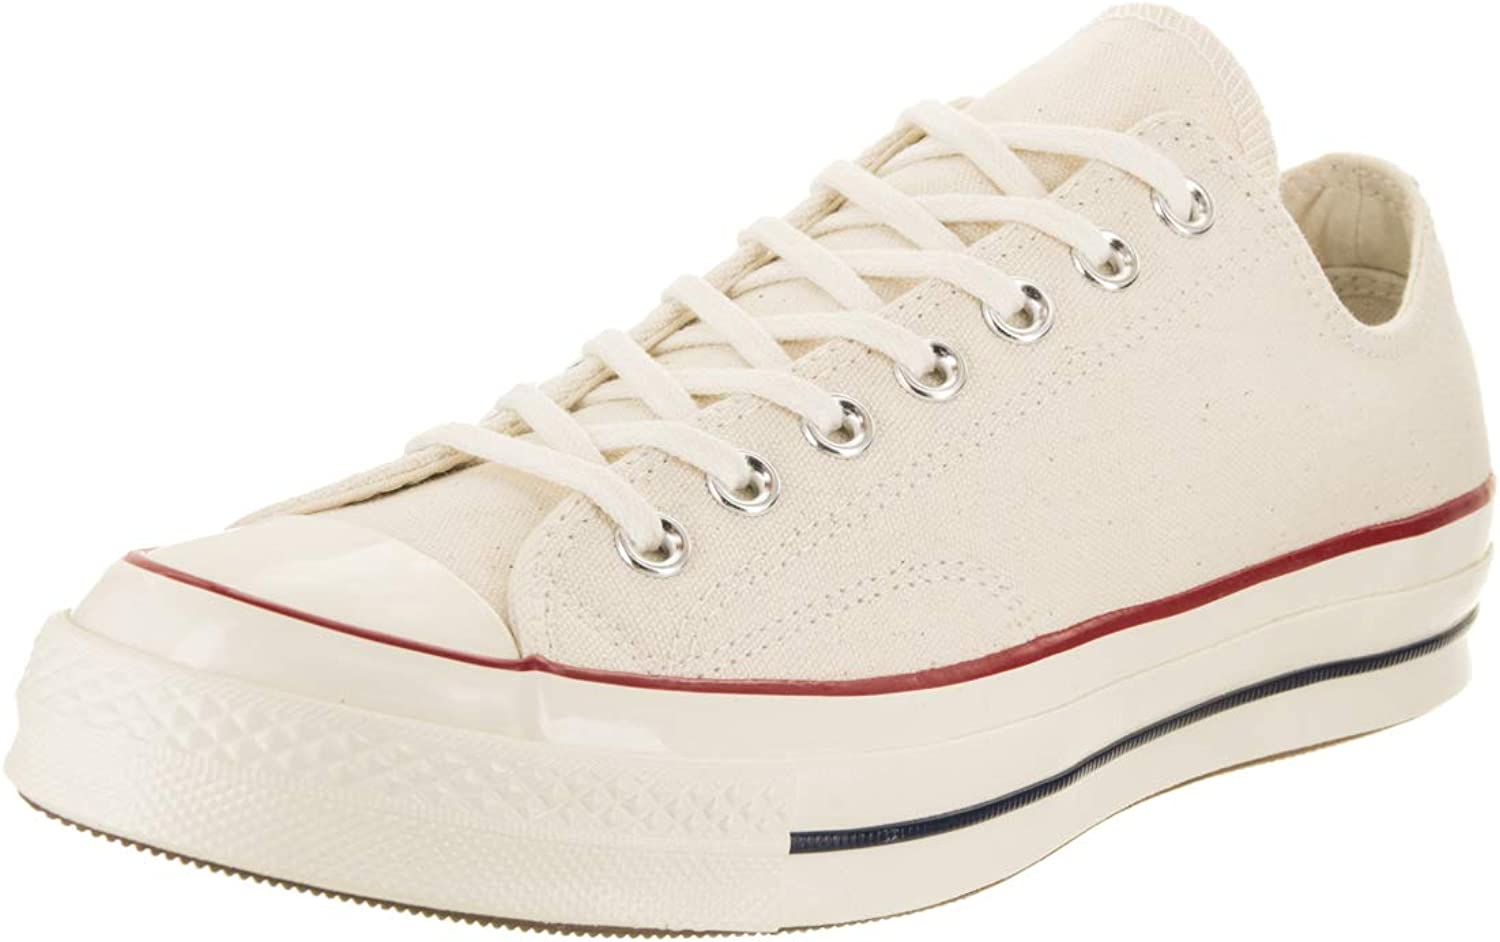 Converse Unisex Adults Taylor Chuck 70 Ox Low-Top Sneakers